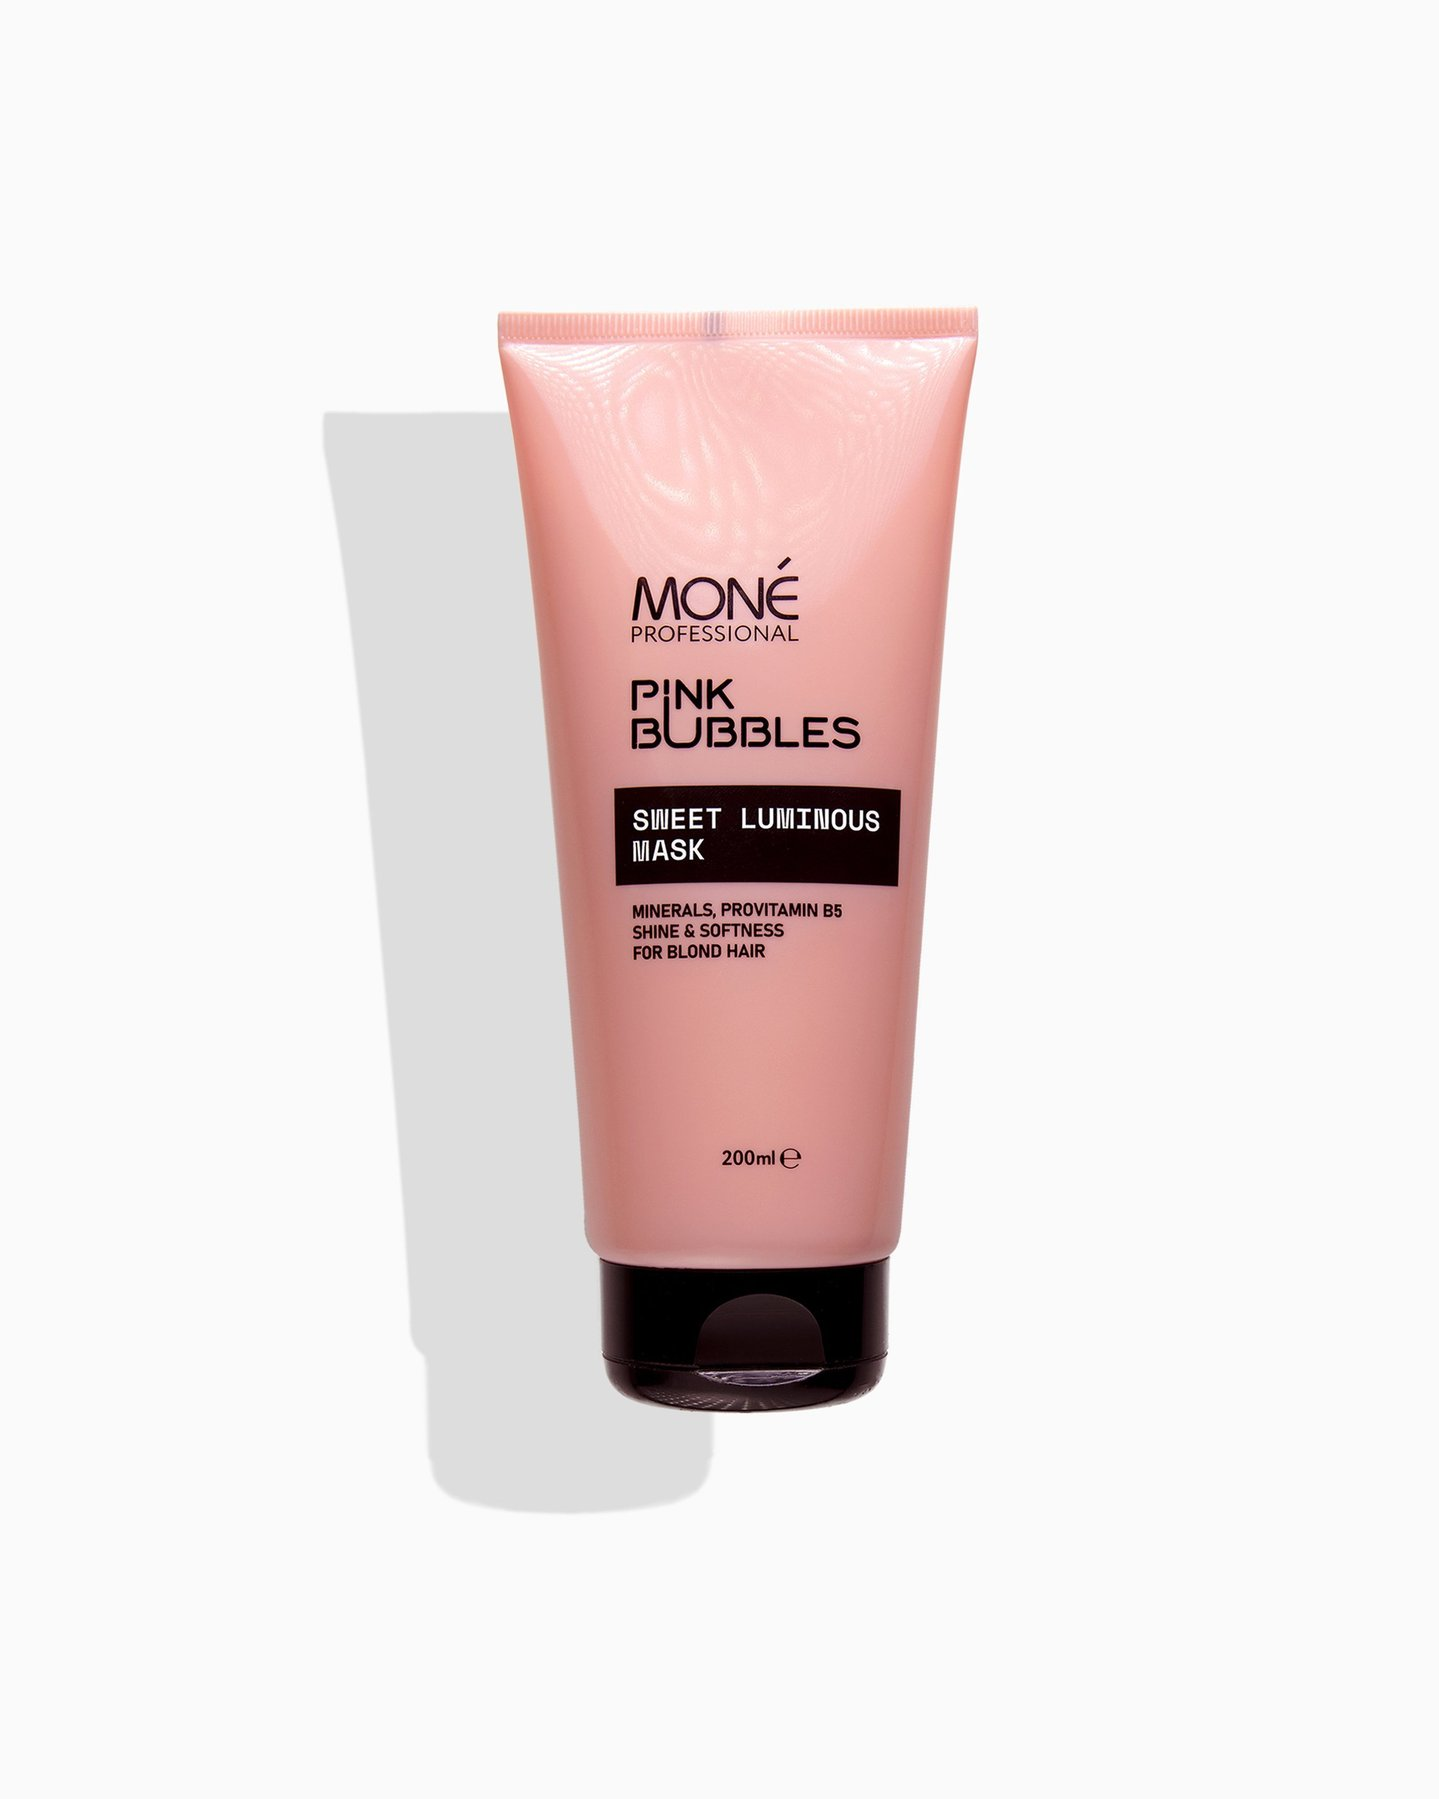 SWEET LUMINOUS HAIR MASK